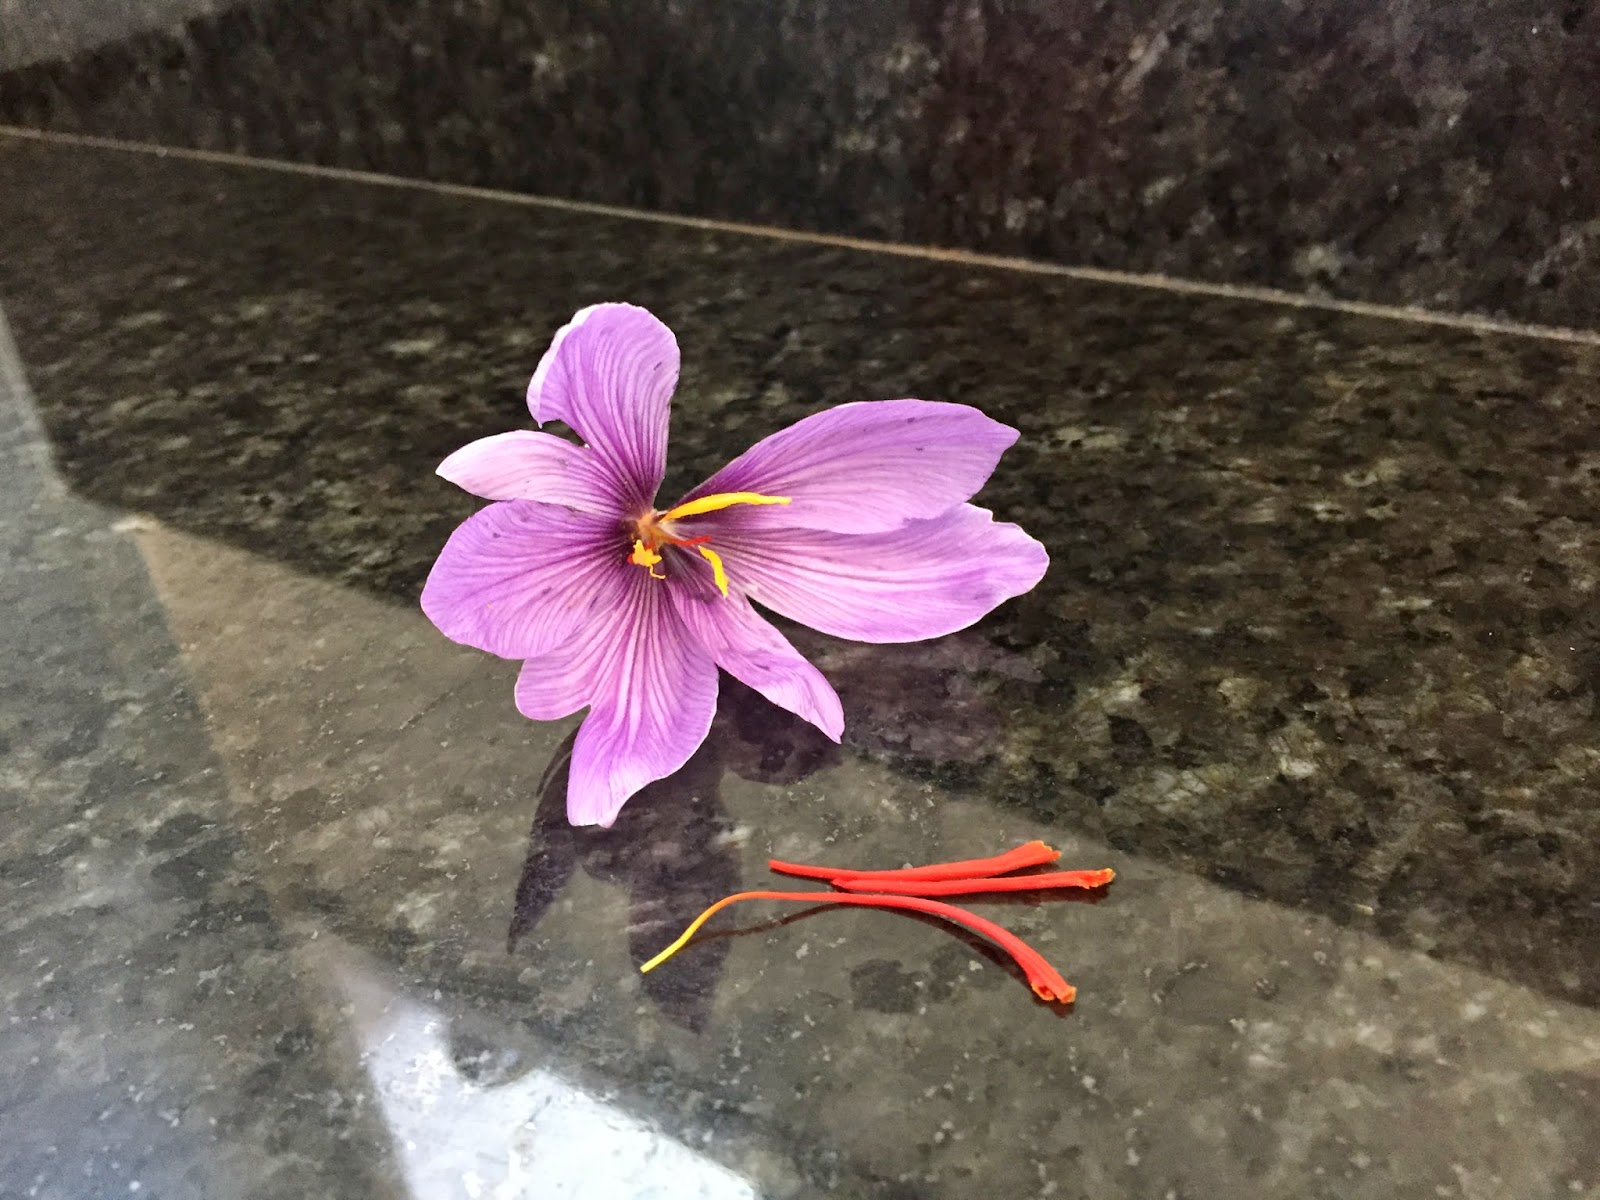 Saffron stamens pulled out